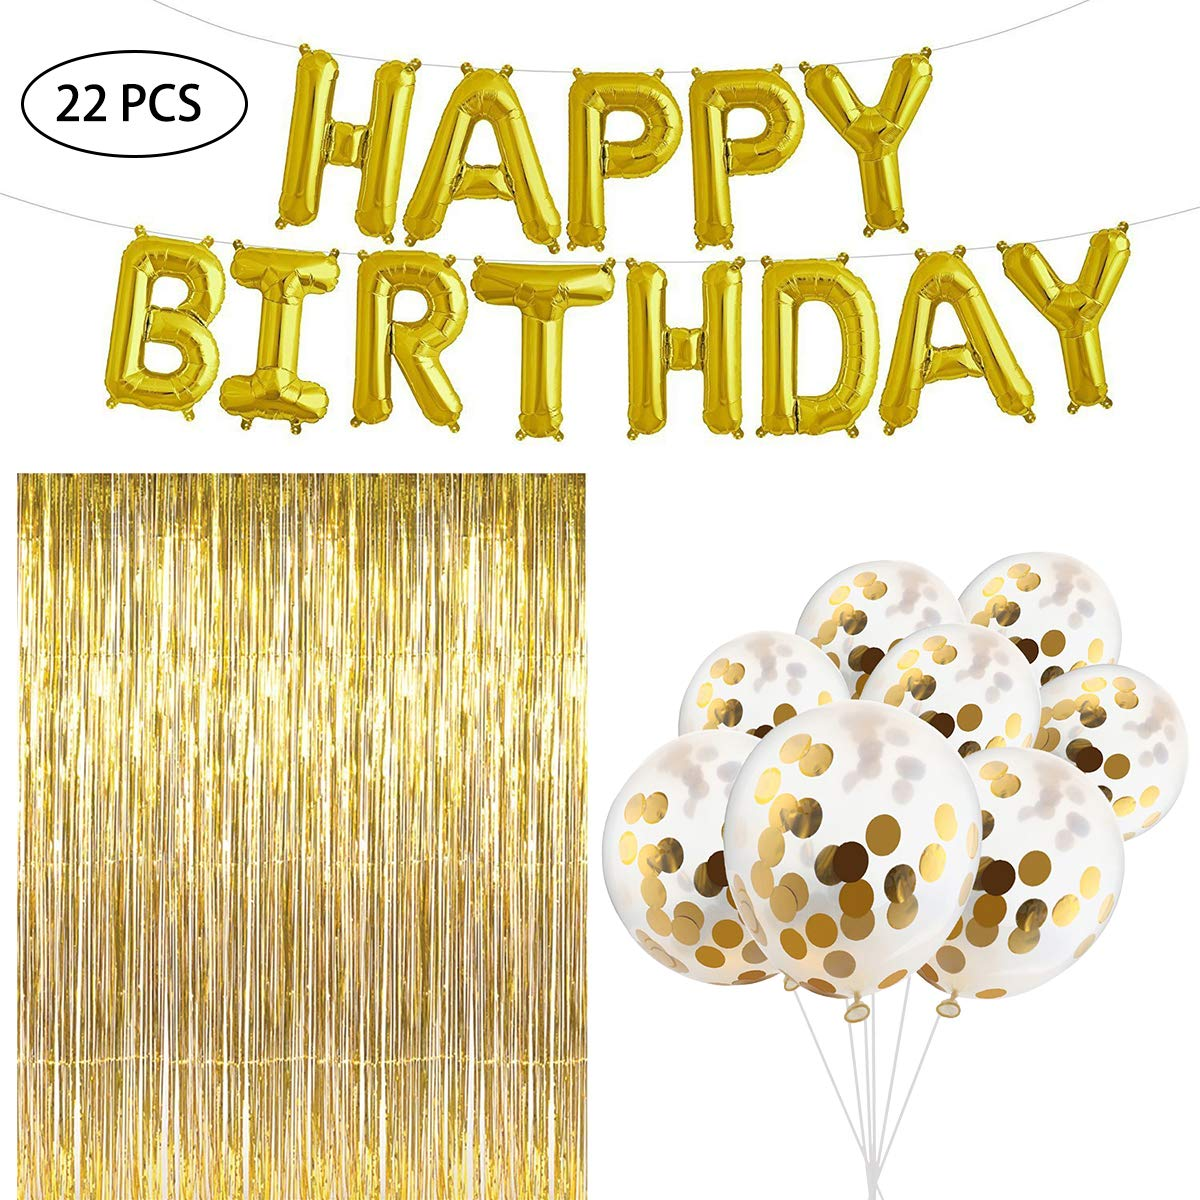 YoungRich 20PCS Confetti Balloons Jumbo Latex Balloons 12'' 1PCS Happy Birthday Foil Balloons Banner Letters Balloons 16'' 1PCS Foil Fringe Shimmer Curtains 3m for Birthday Party Decoration Gold